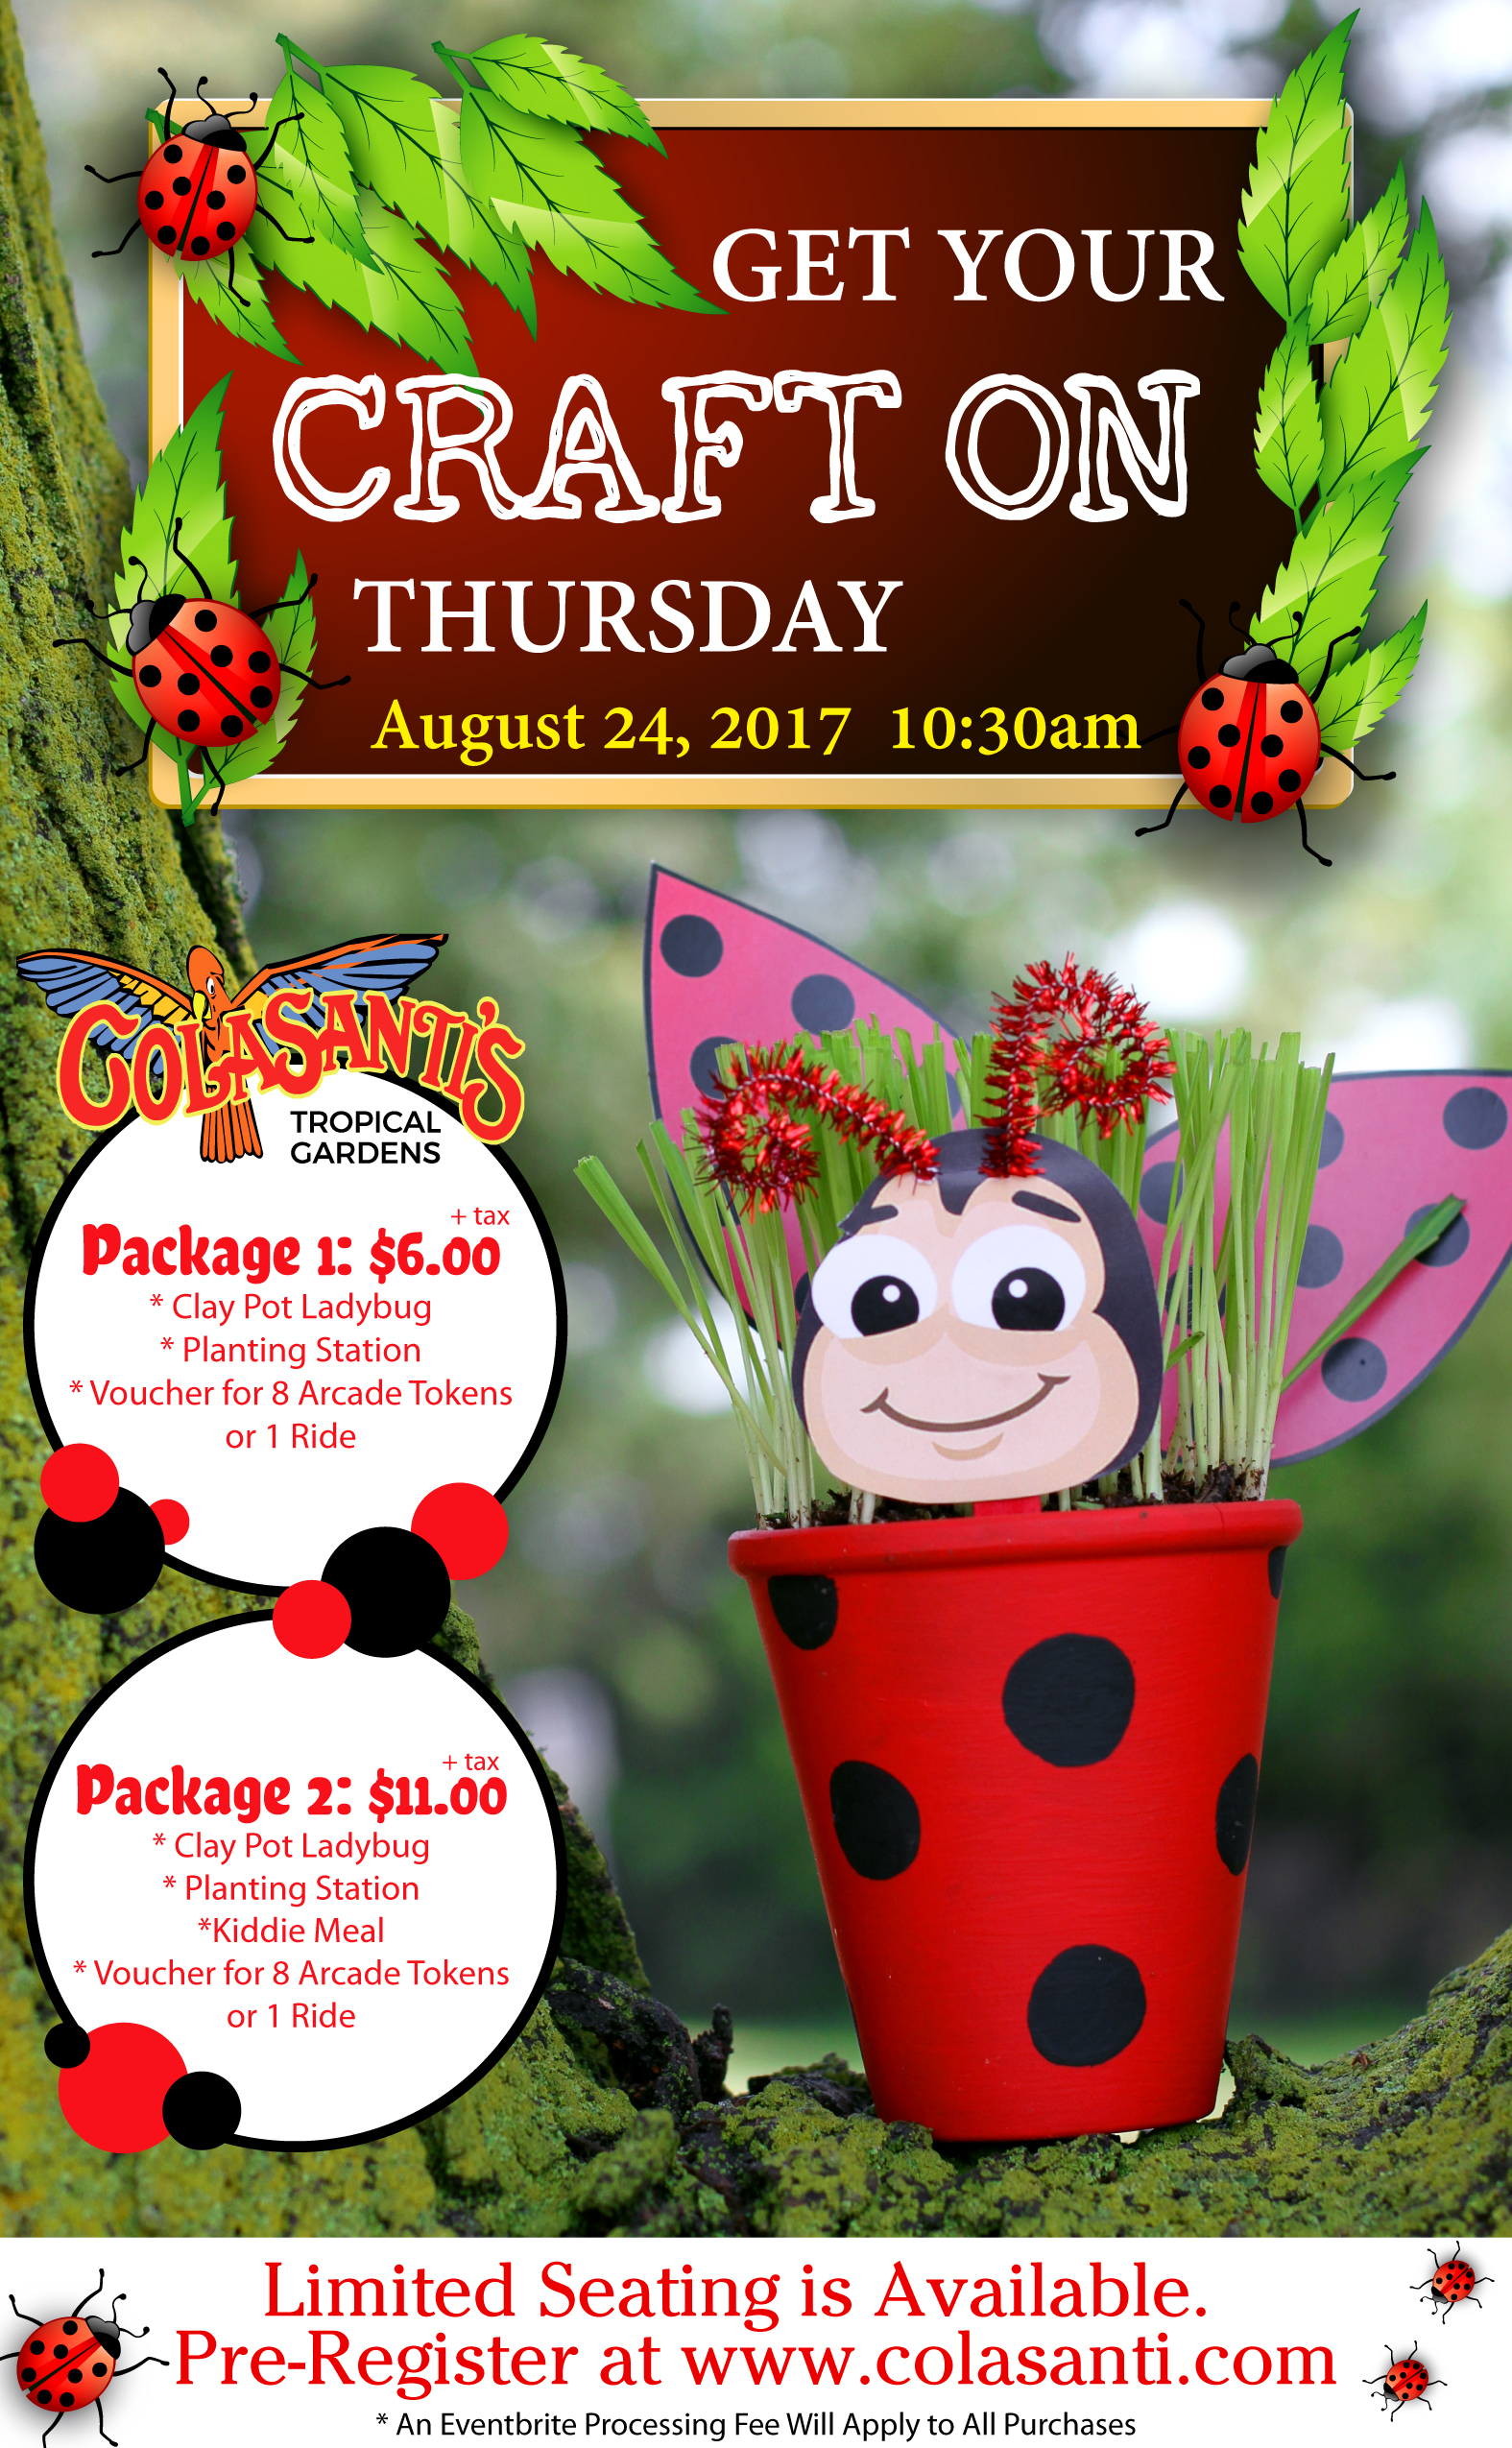 Get Your Craft On Thursday at Colasanti's Tropical Gardens